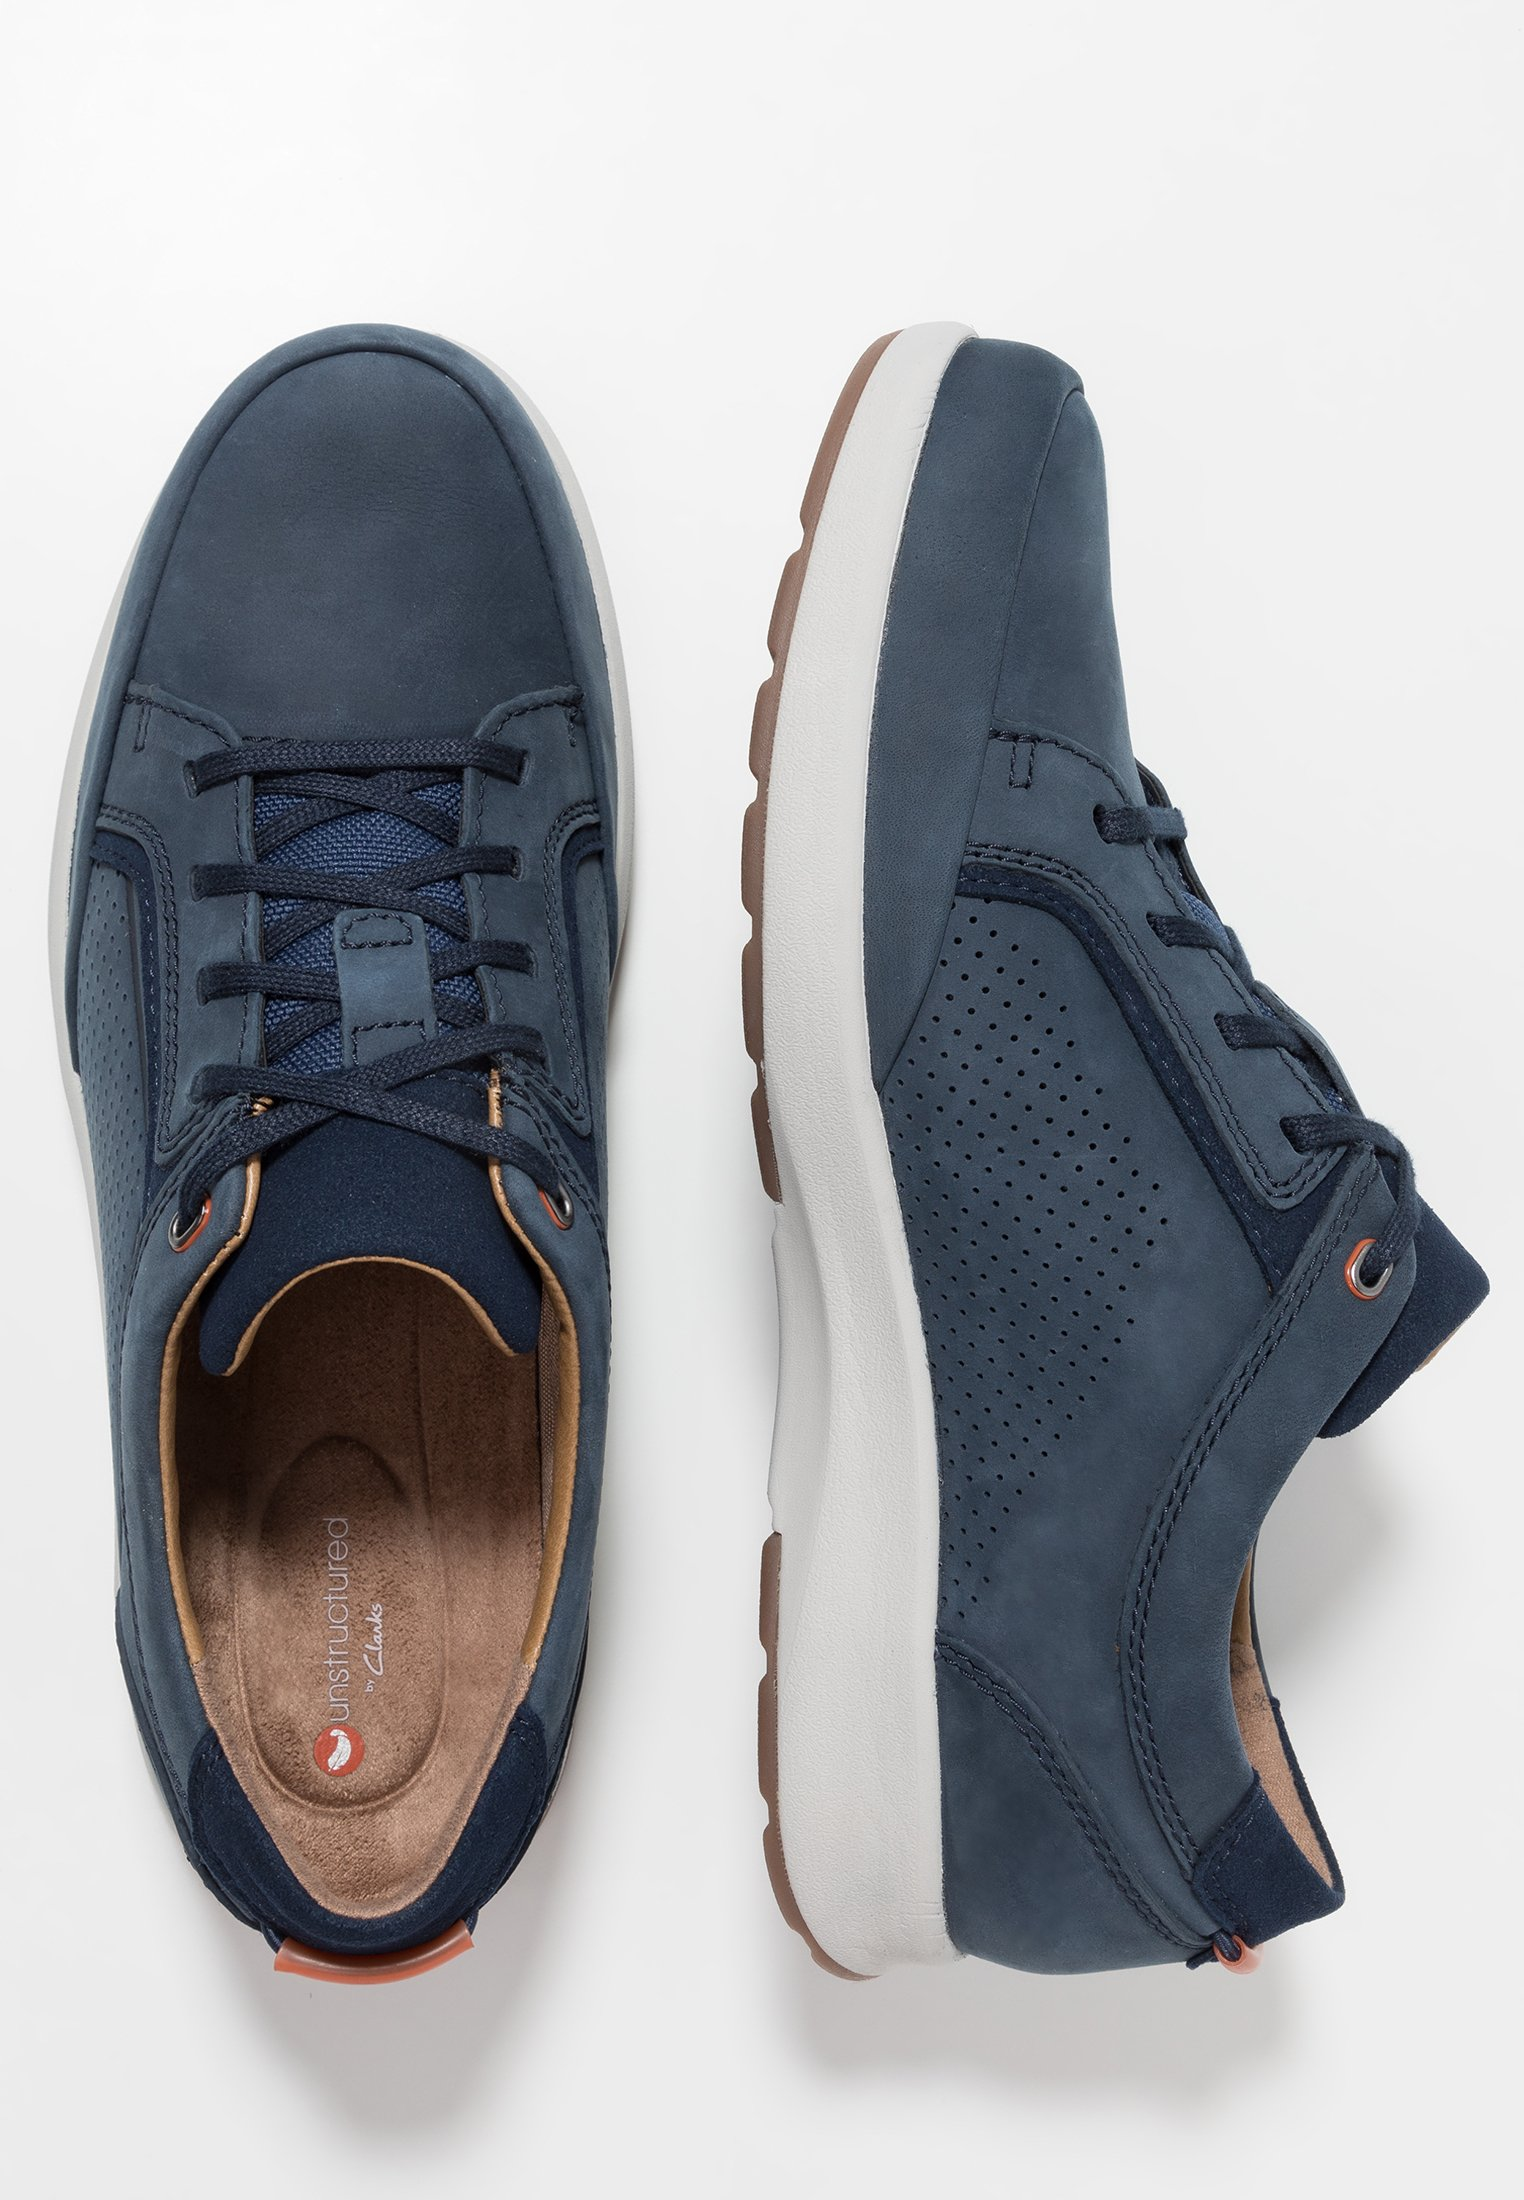 Clarks Un Trail Form - Casual Lace-ups Navy